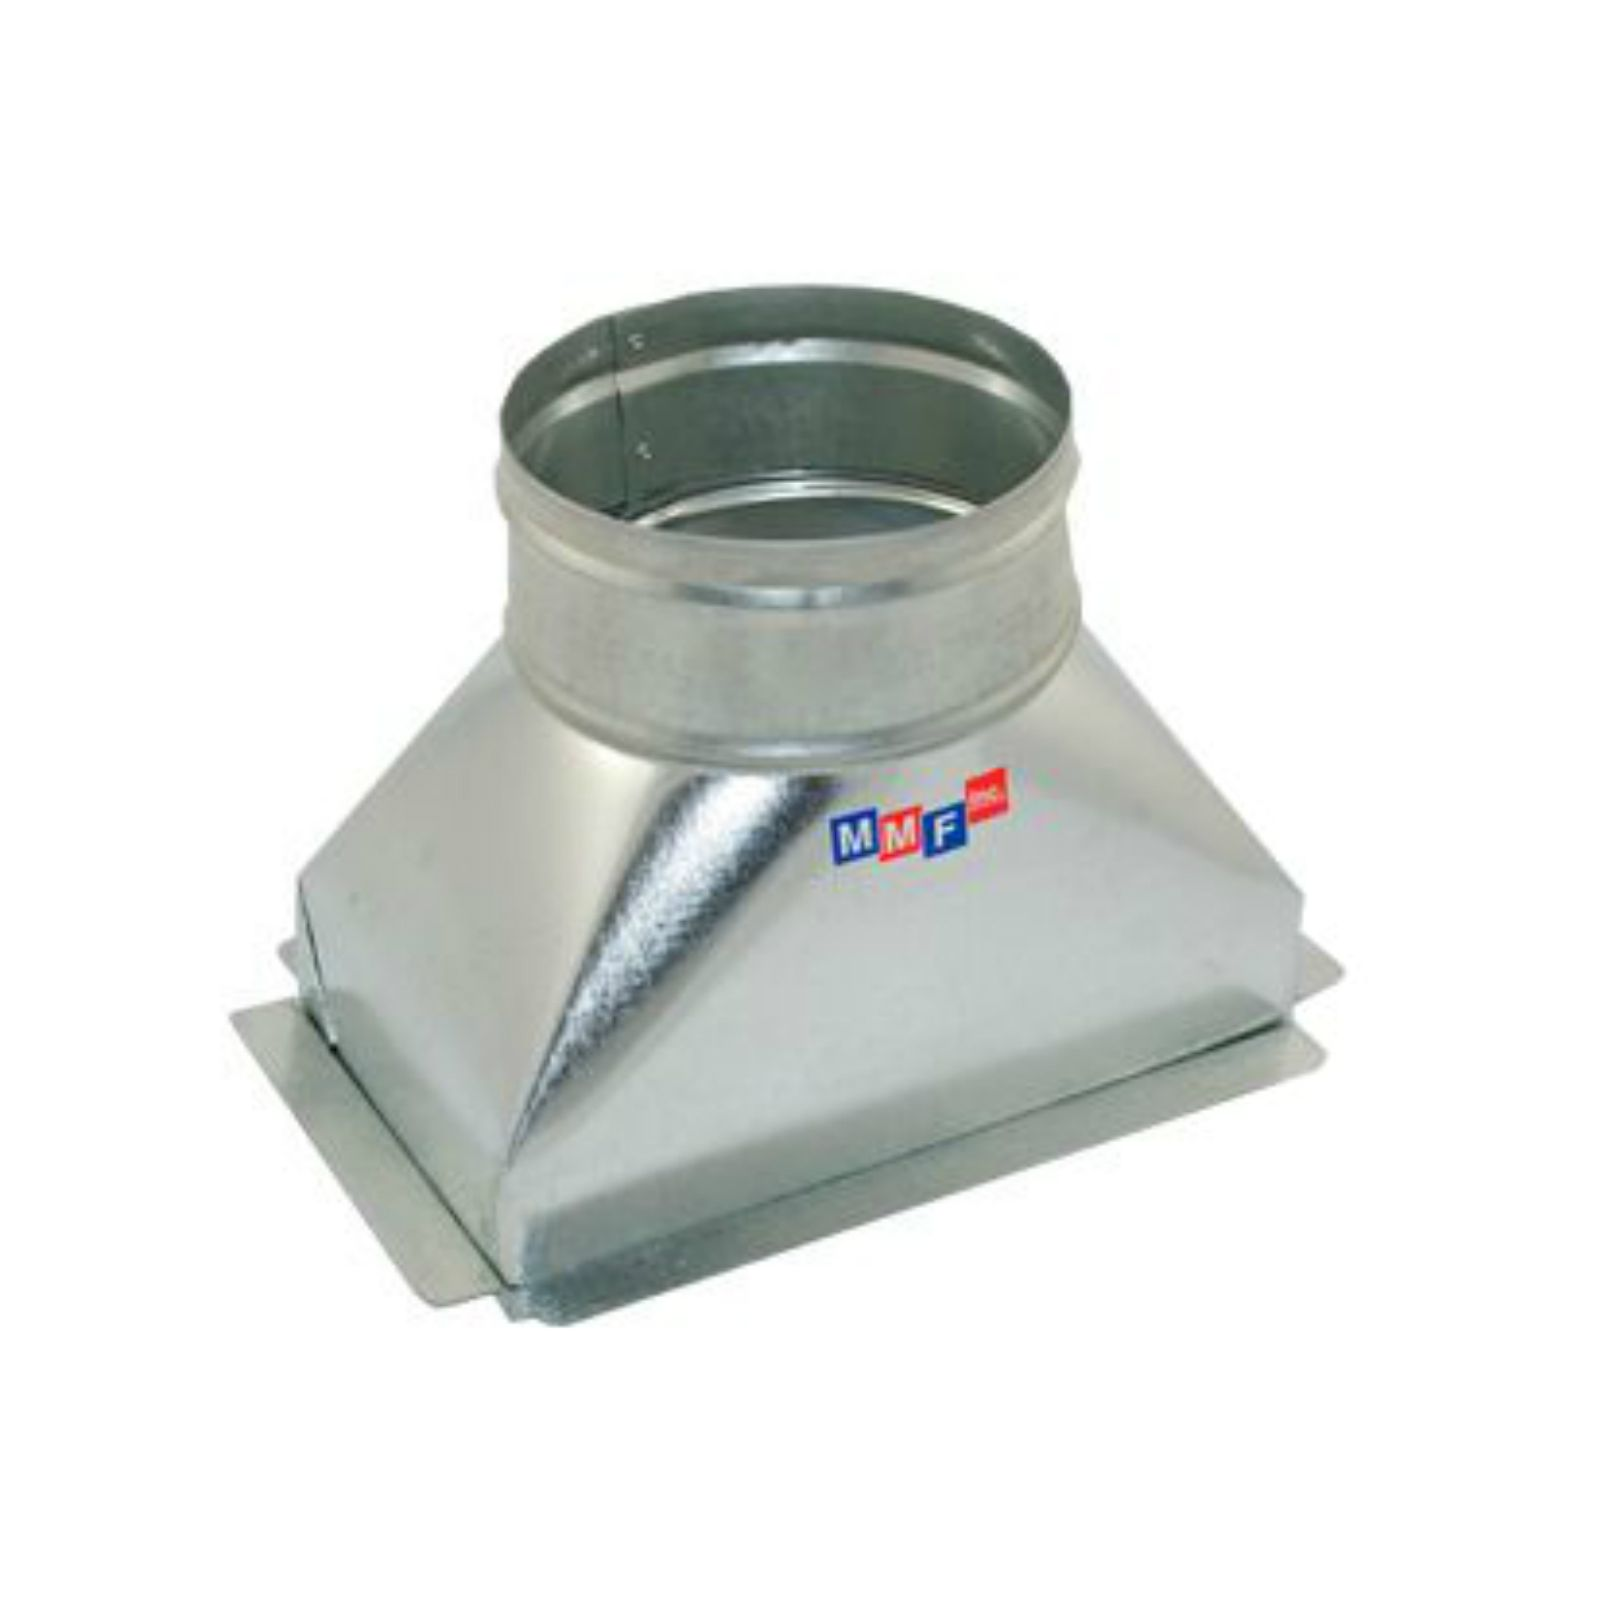 "Modular Metal BTSFG120607P - Sealed Floor Box - 30 Gauge - With Plaster Ground Flange 12"" X 06"" To 07"" Round"